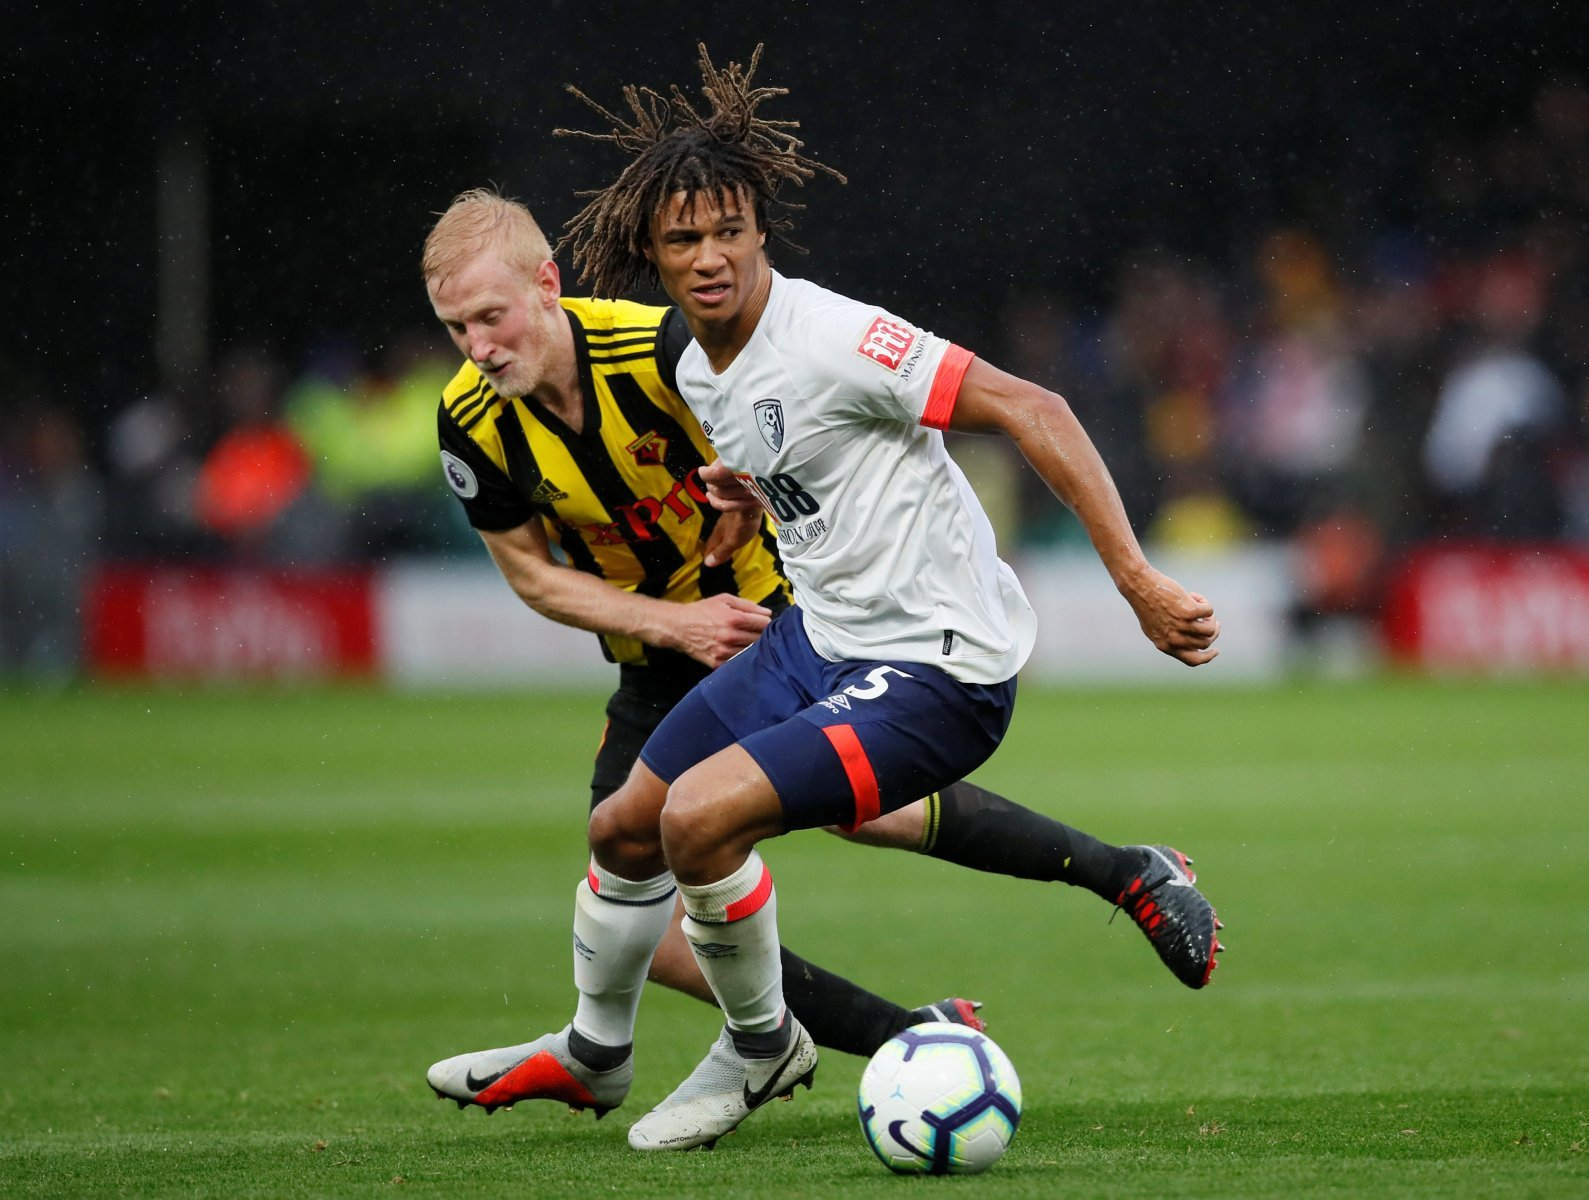 Nathan Ake and Davinson Sanchez could be Tottenham's answer to Laporte and Stones